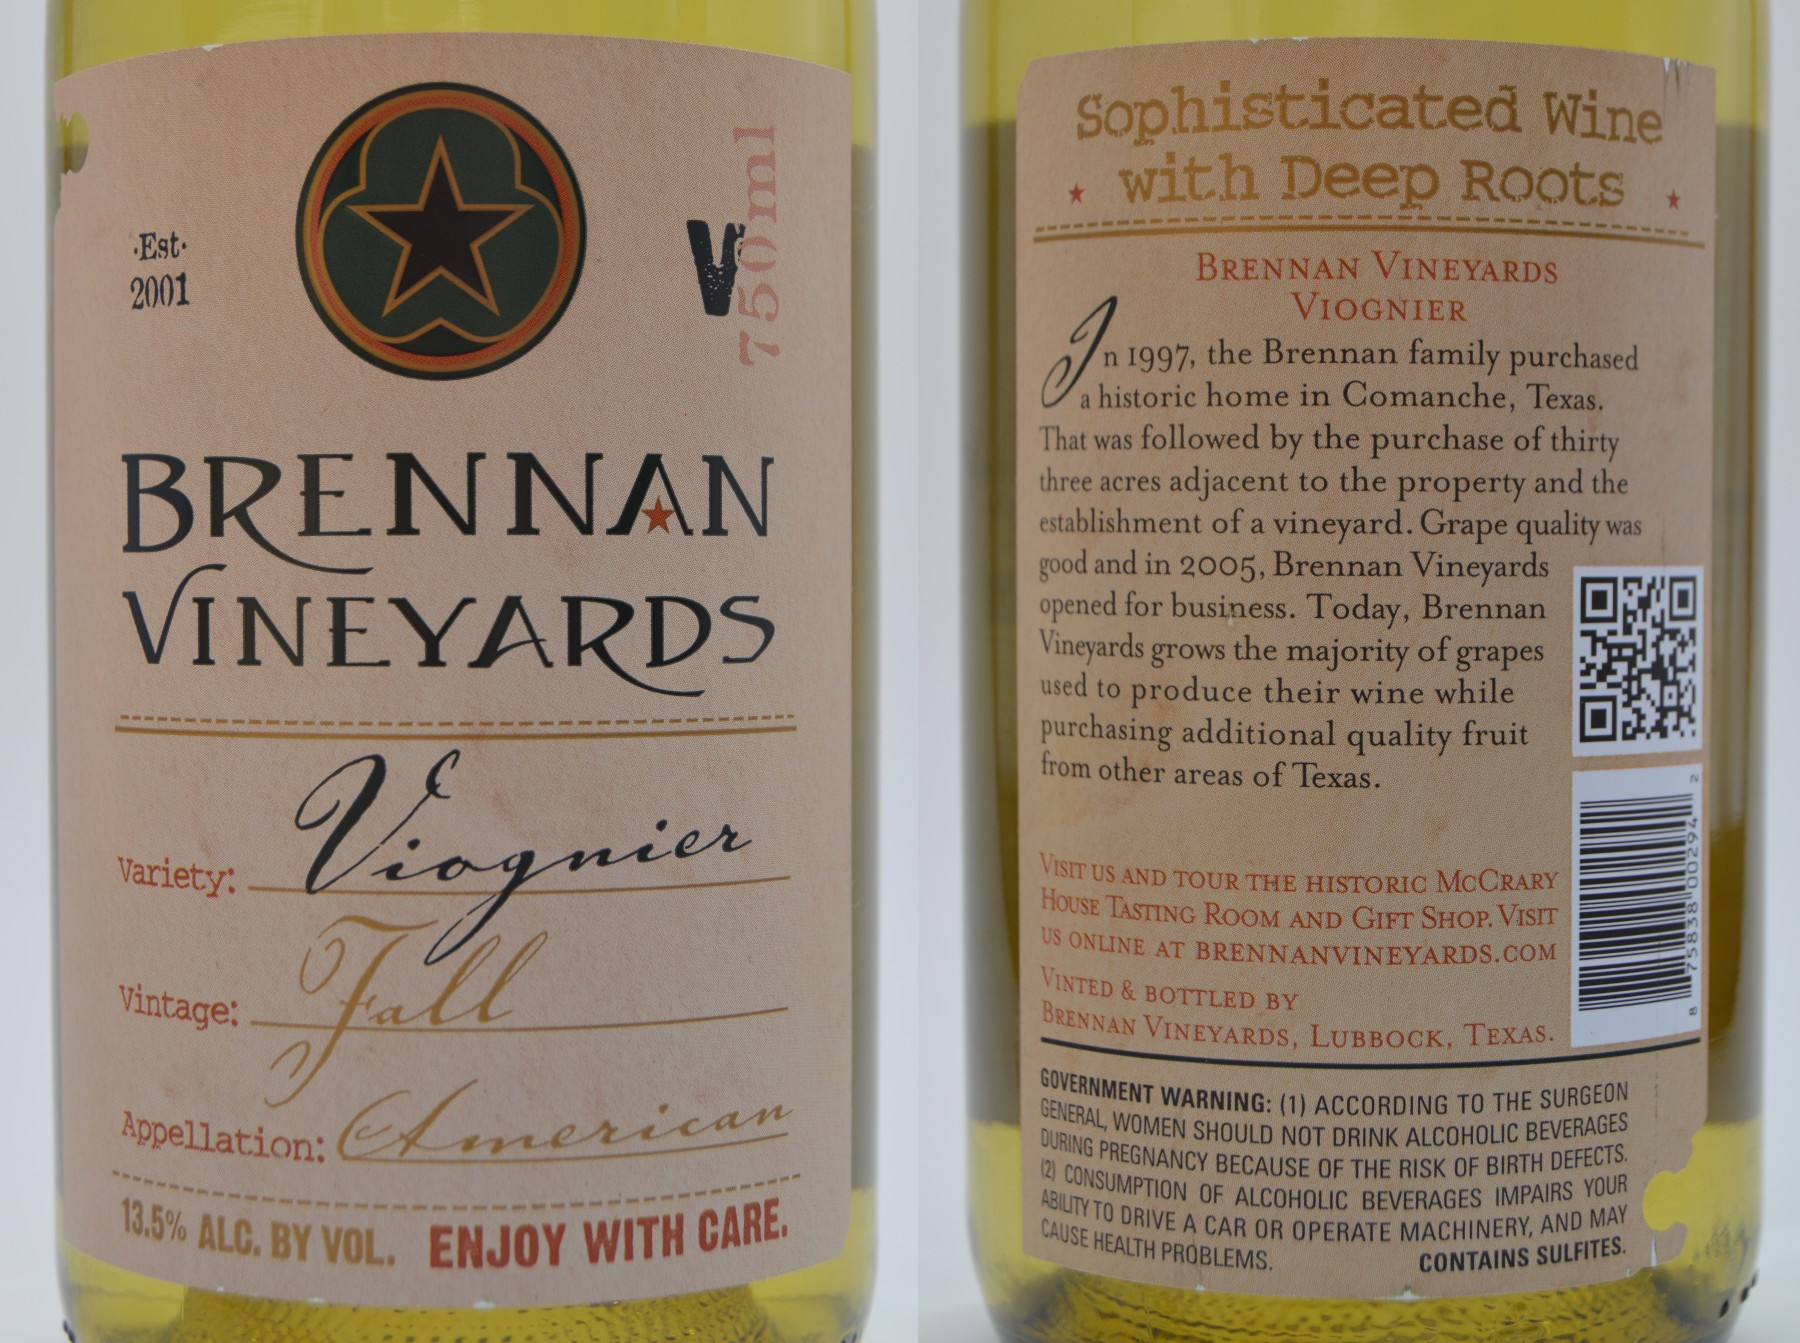 Brennan Vineyards Viognier label